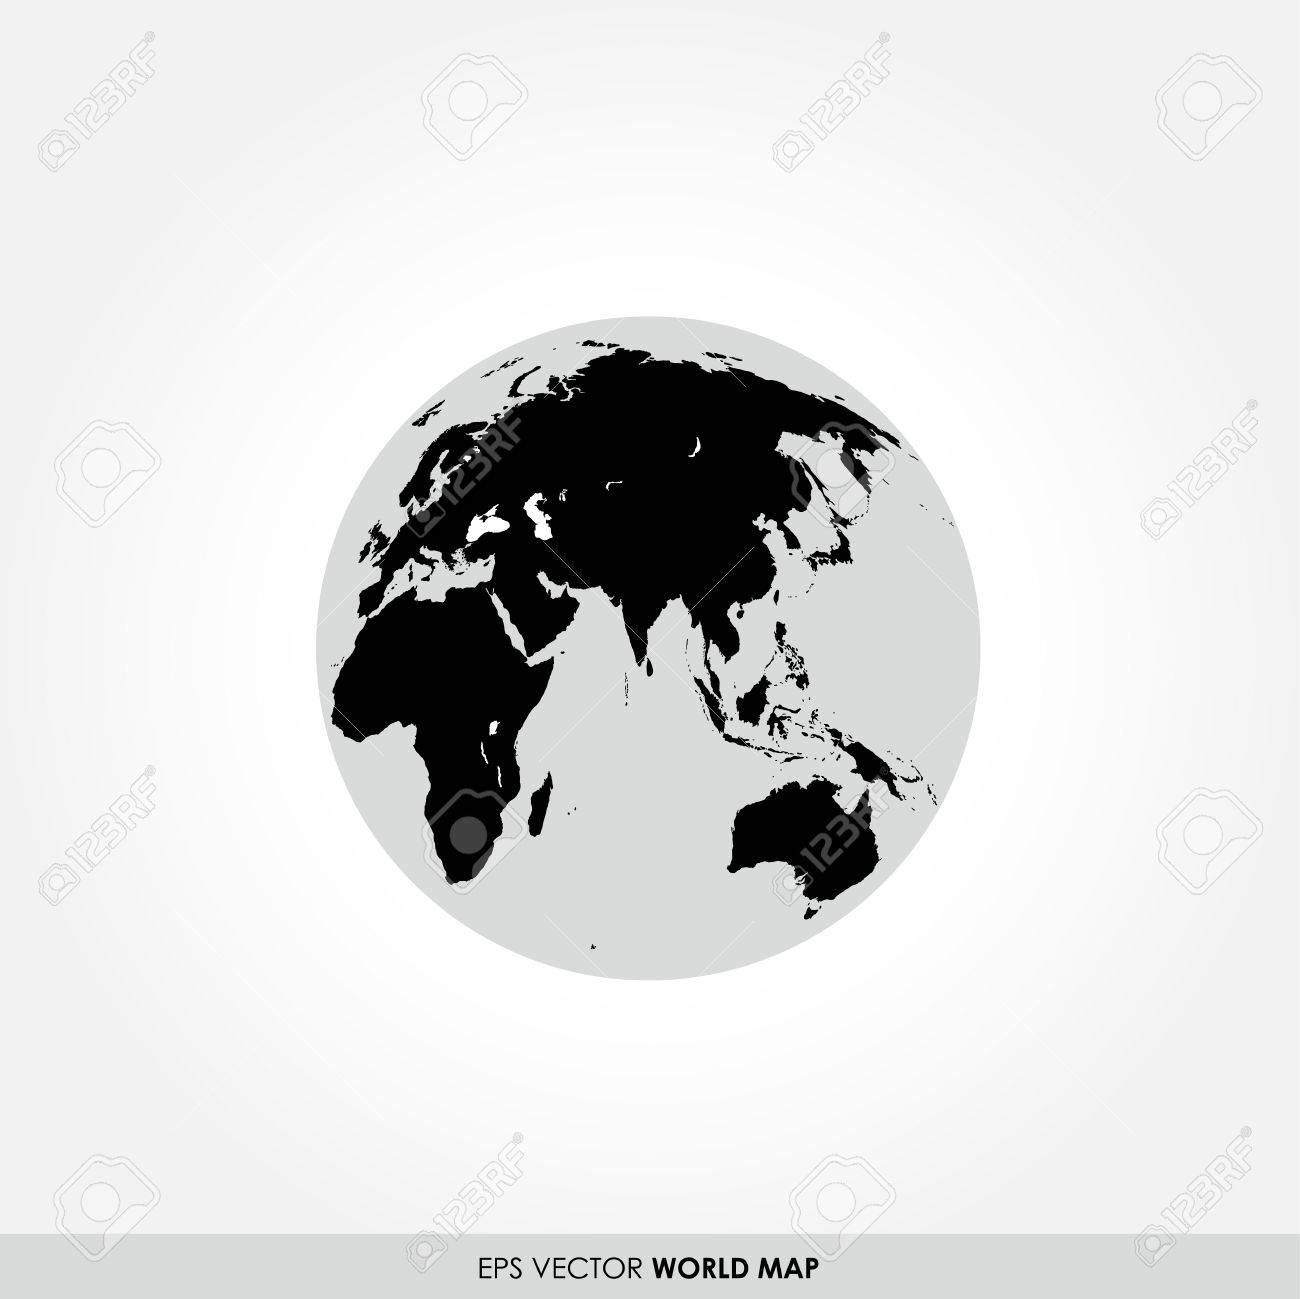 Black world map on globe icon royalty free cliparts vectors and black world map on globe icon stock vector 26848385 gumiabroncs Gallery